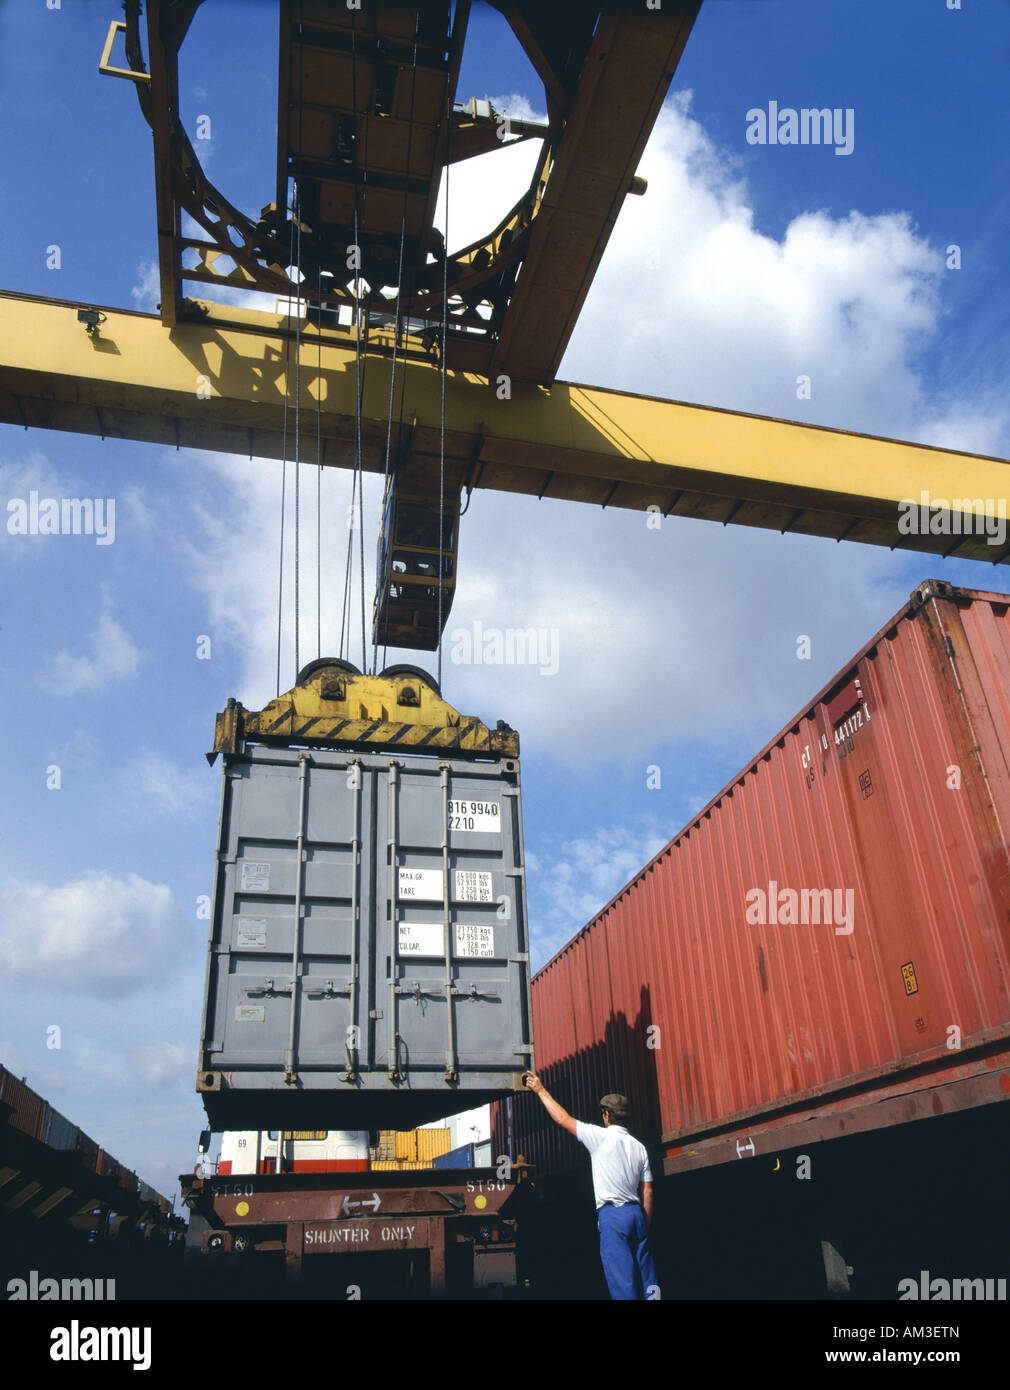 Shipping container being loaded onto specialised lorry - Stock Image